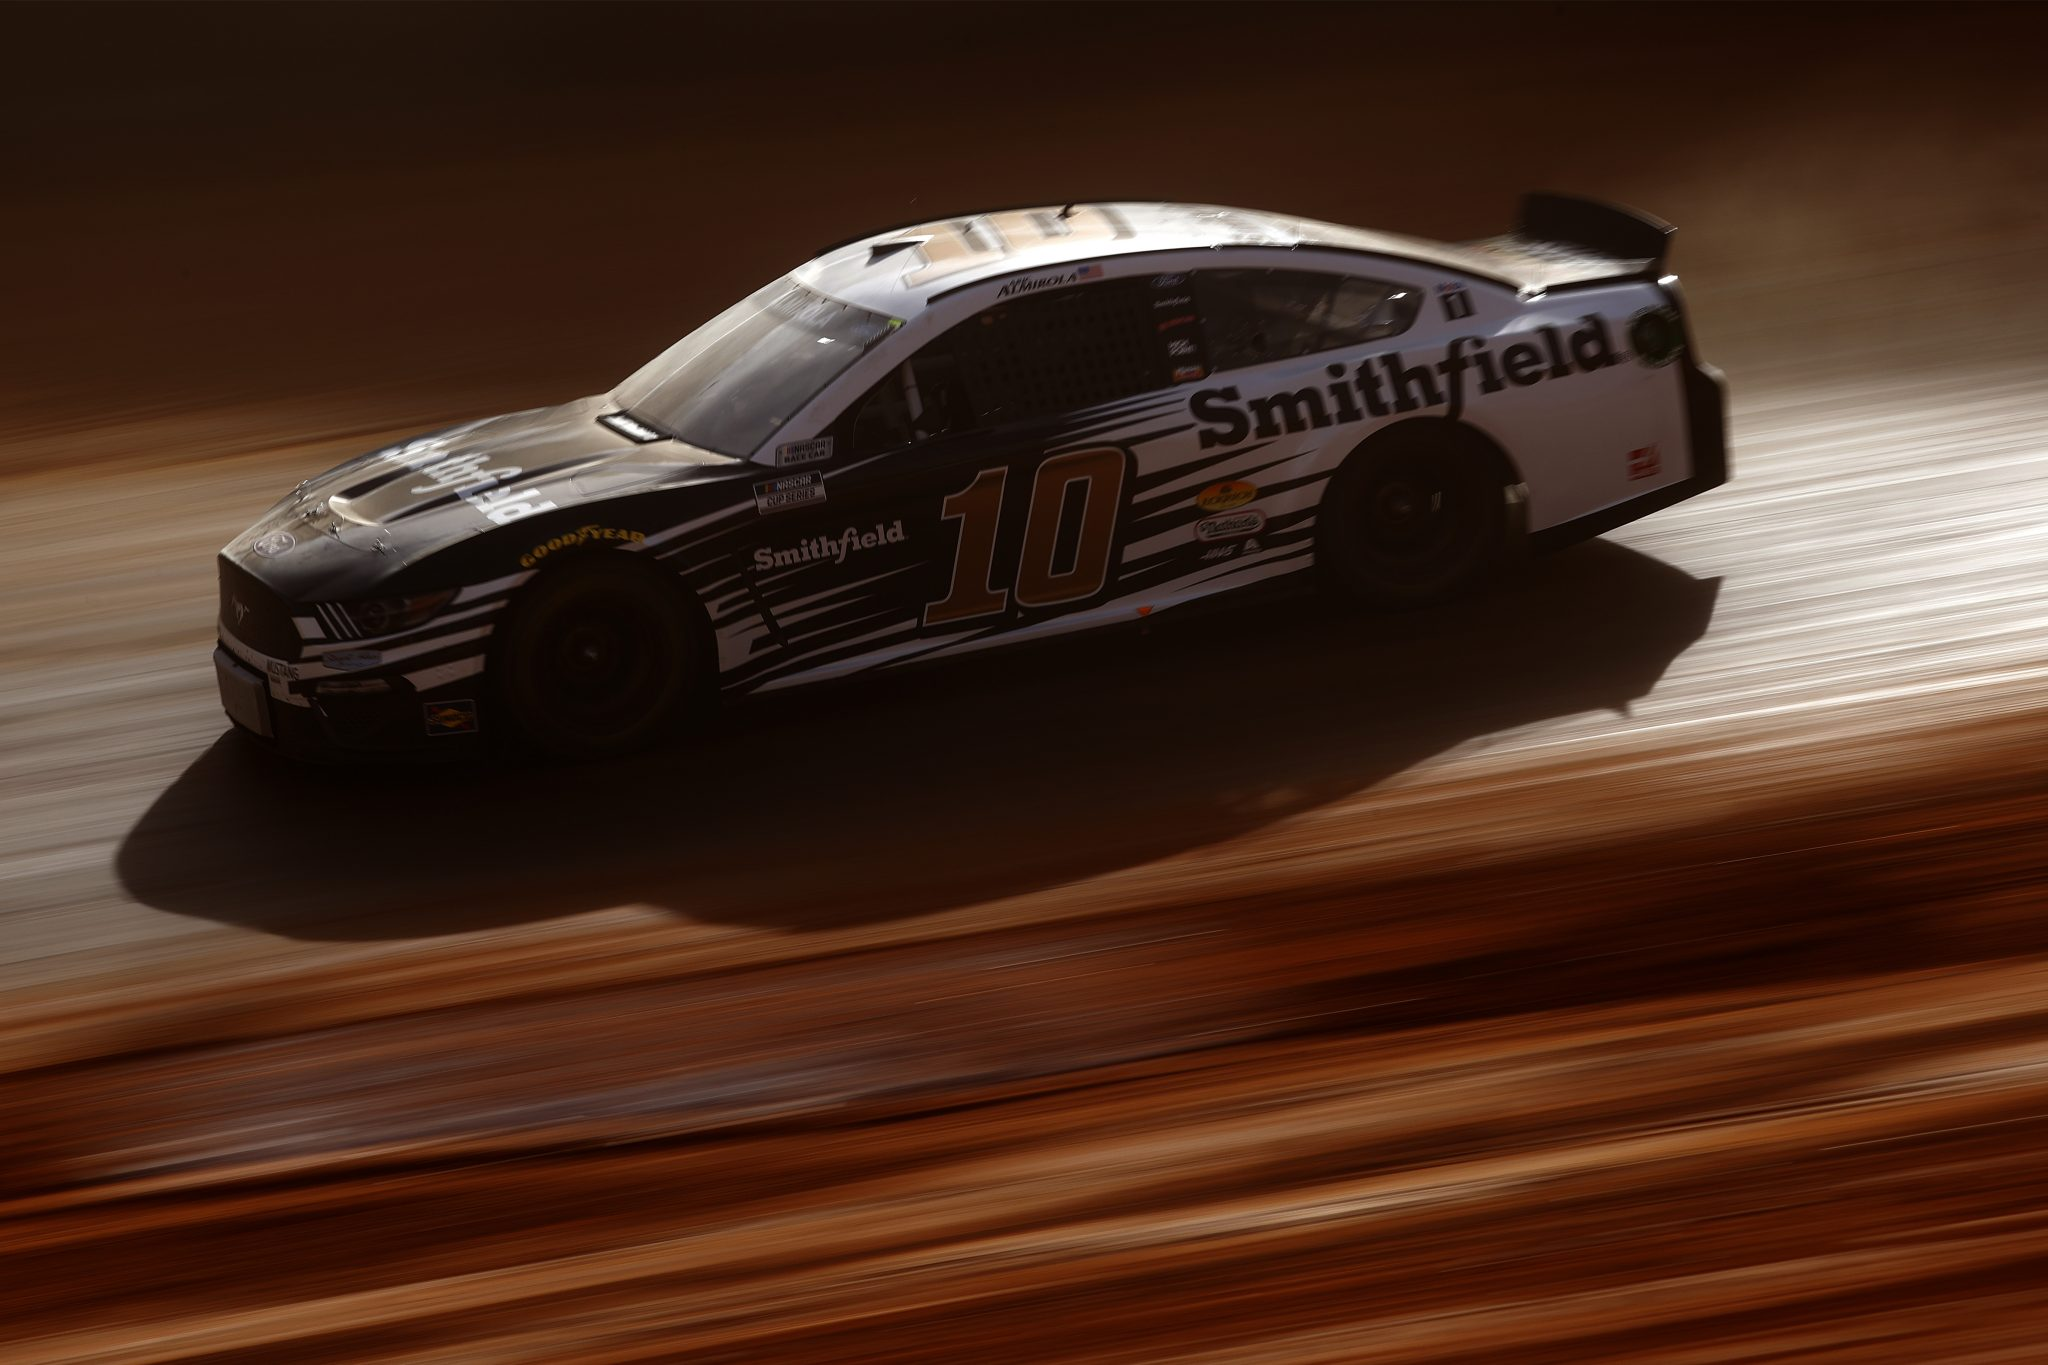 BRISTOL, TENNESSEE - MARCH 26: Aric Almirola, driver of the #10 Smithfield Ford, drives during practice for the NASCAR Cup Series Food City Dirt Race at Bristol Motor Speedway on March 26, 2021 in Bristol, Tennessee. (Photo by Chris Graythen/Getty Images) | Getty Images